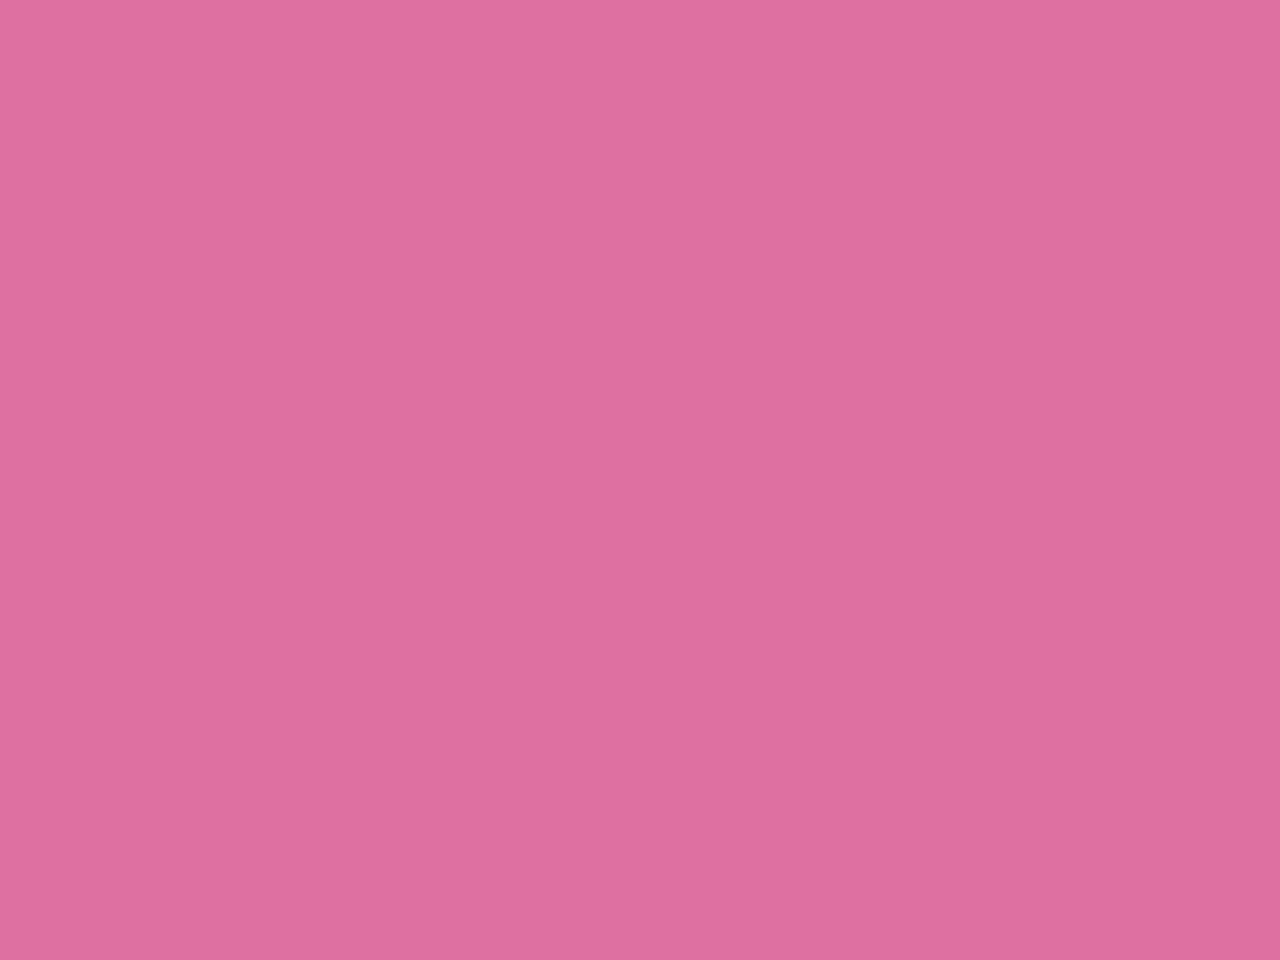 1280x960 China Pink Solid Color Background